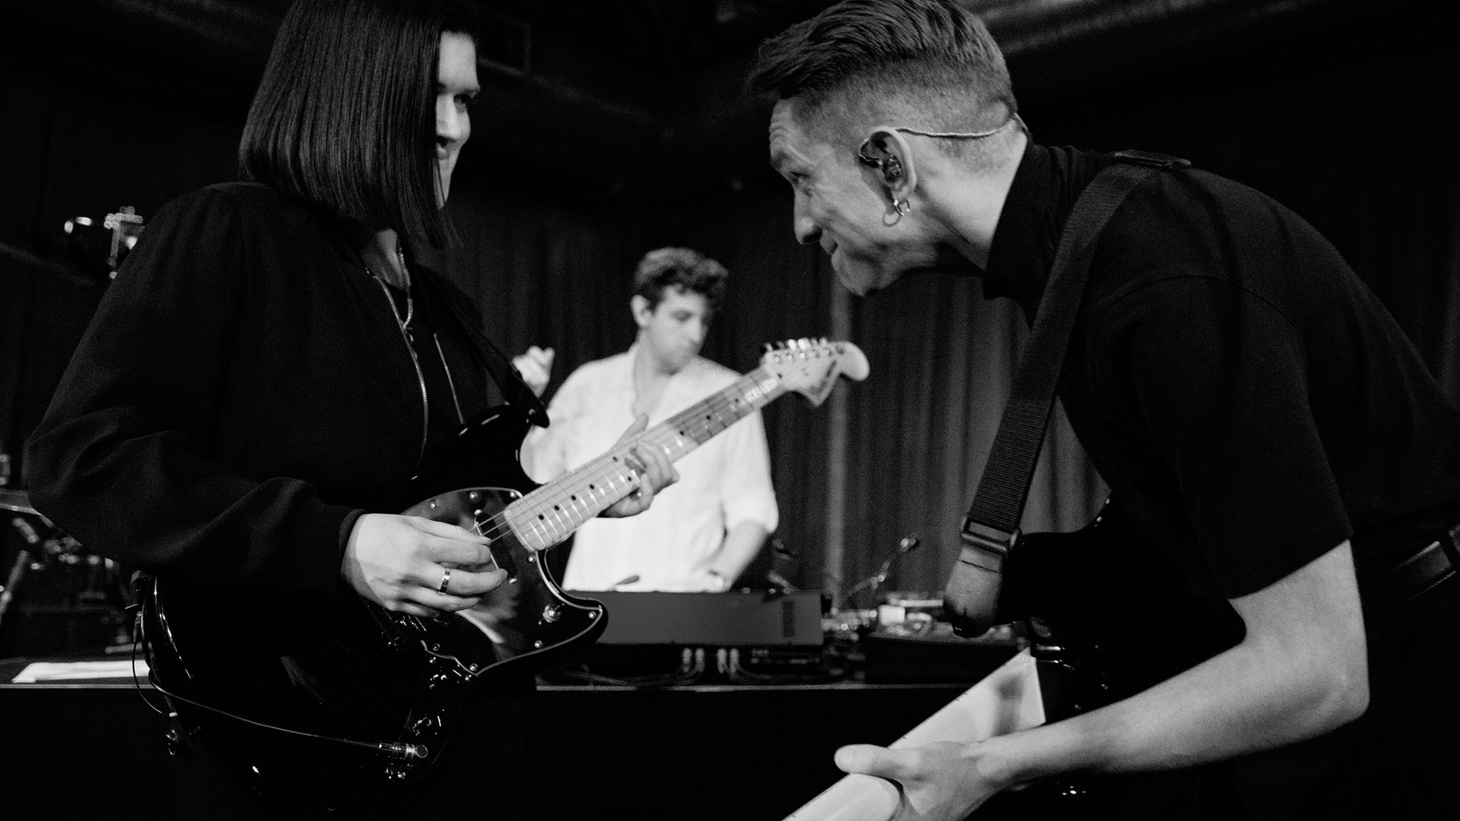 The trio behind The xx have been playing music together since they were teenagers and have sold millions of records. On I See You, they step boldly into the limelight and we share highlights of a recent live session recorded at Apogee studio.